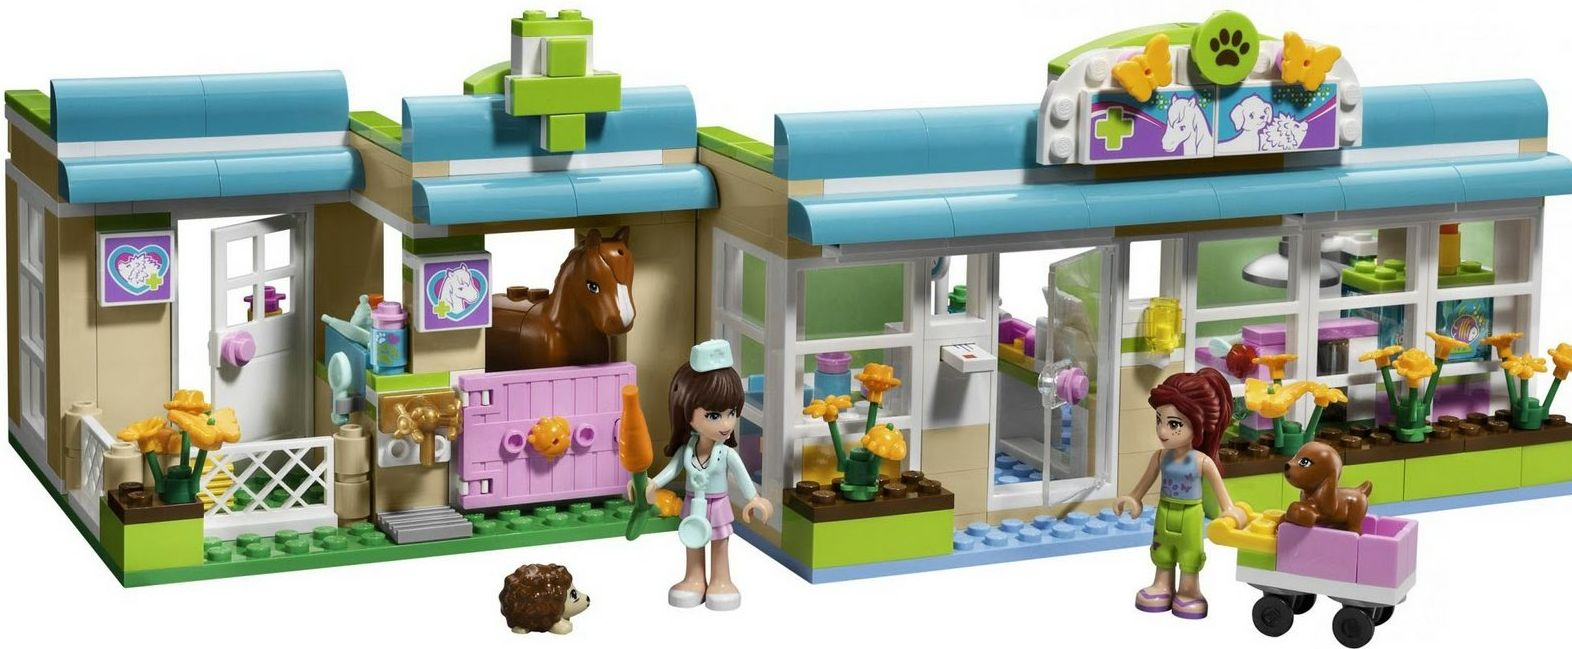 Lego Friends 3188 Heartlake Vet  L